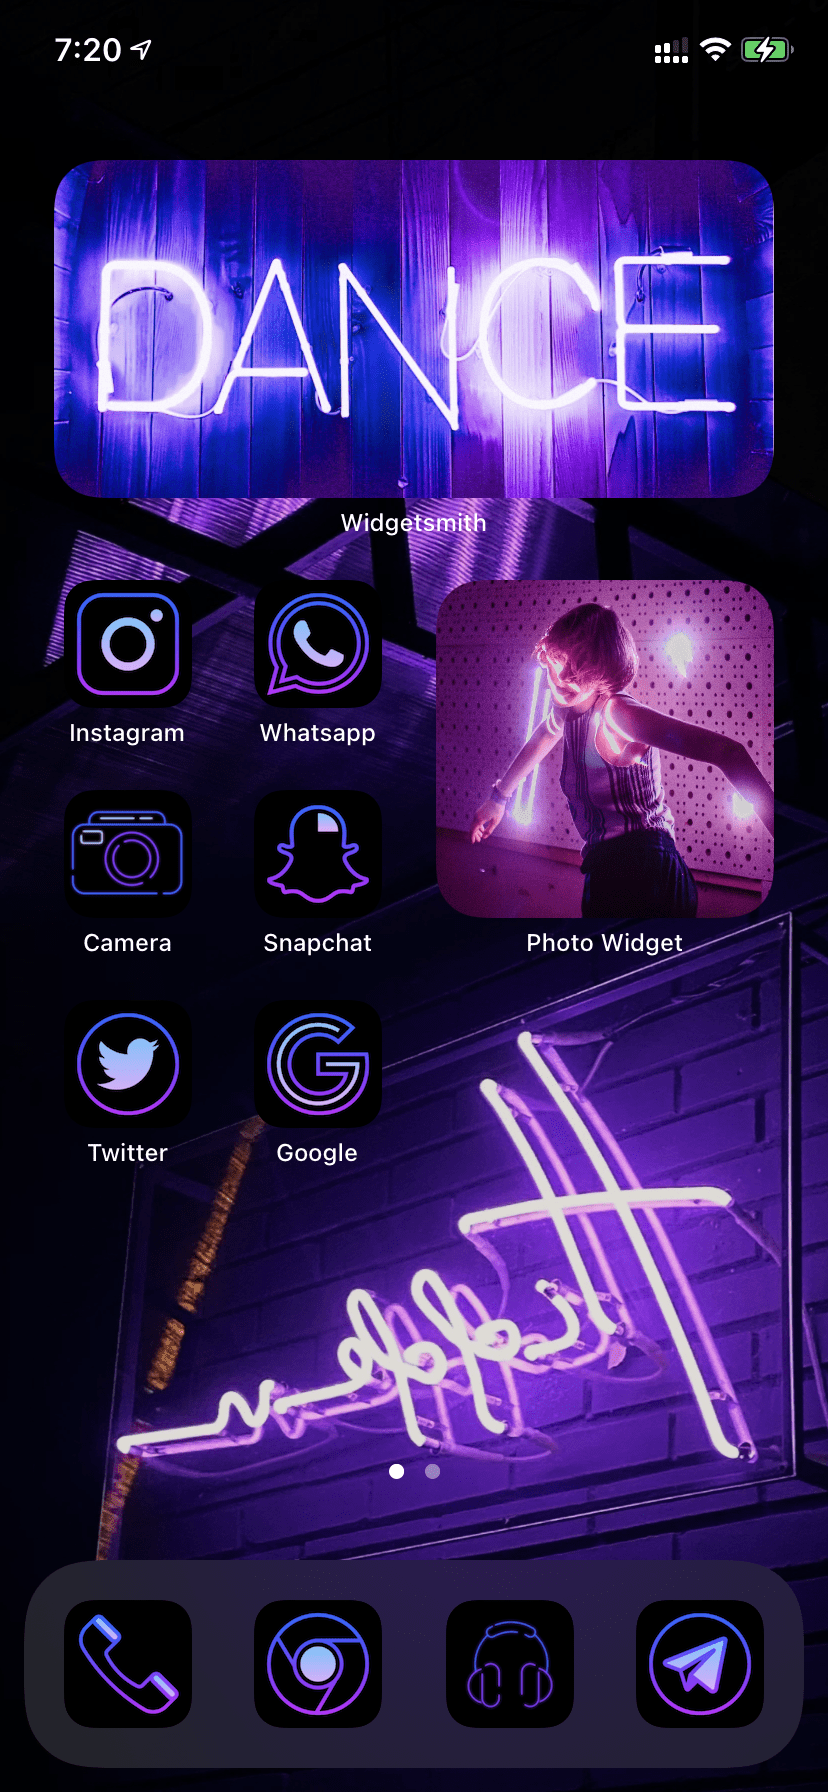 How To Create An Aesthetic Home Screen In Ios 14 With Custom App Icons And Photo Widgets All Things How In 2020 Homescreen Iphone Homescreen Iphone Wallpaper App